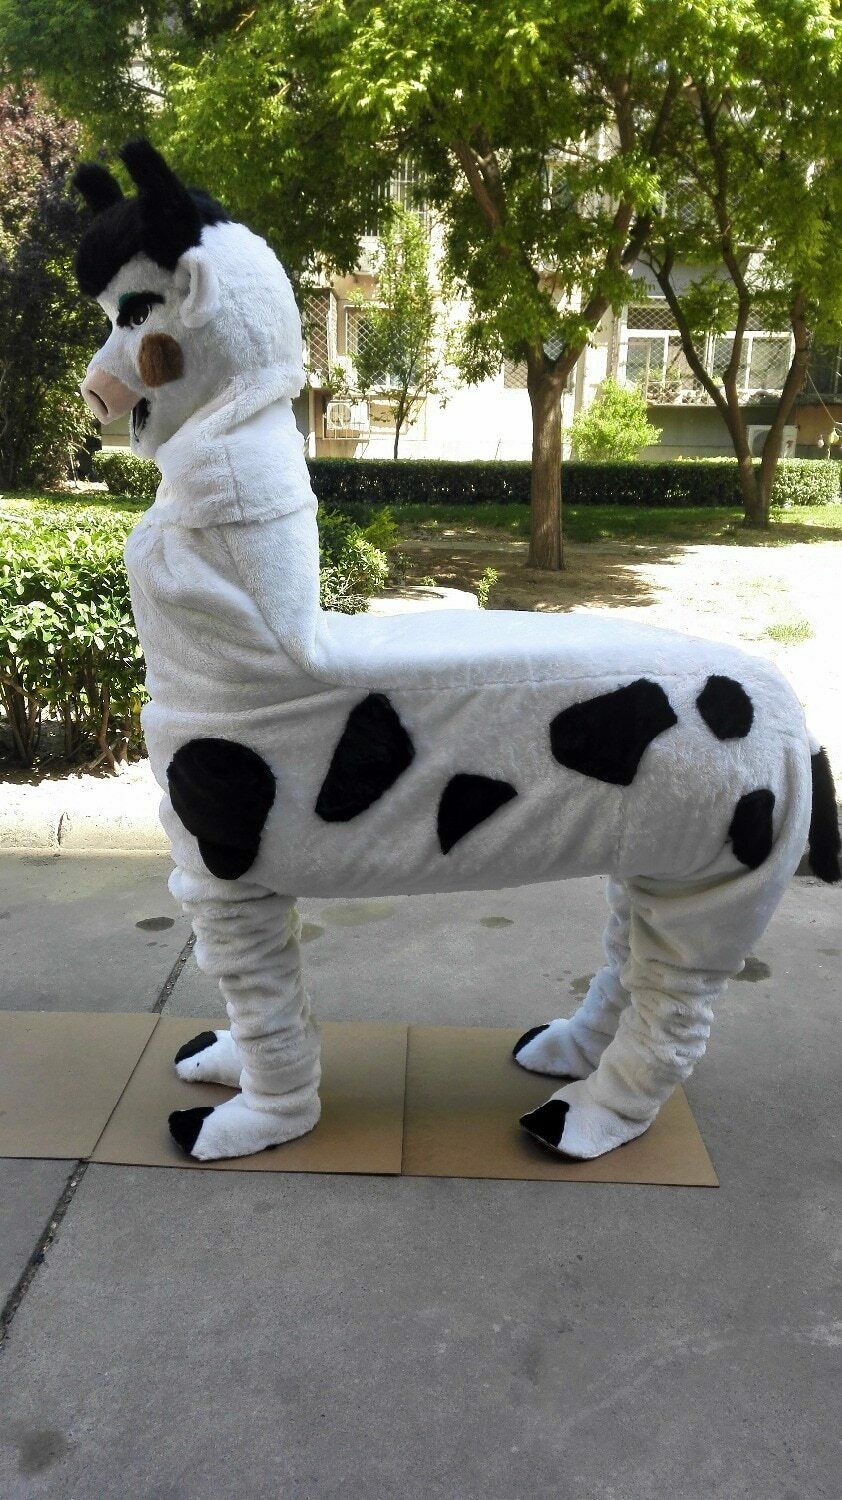 Cow Mascot Costume Suits Cosplay Party Game Dress Outfits Clothing Advertising Carnival Halloween Xmas Easter Festival Adults